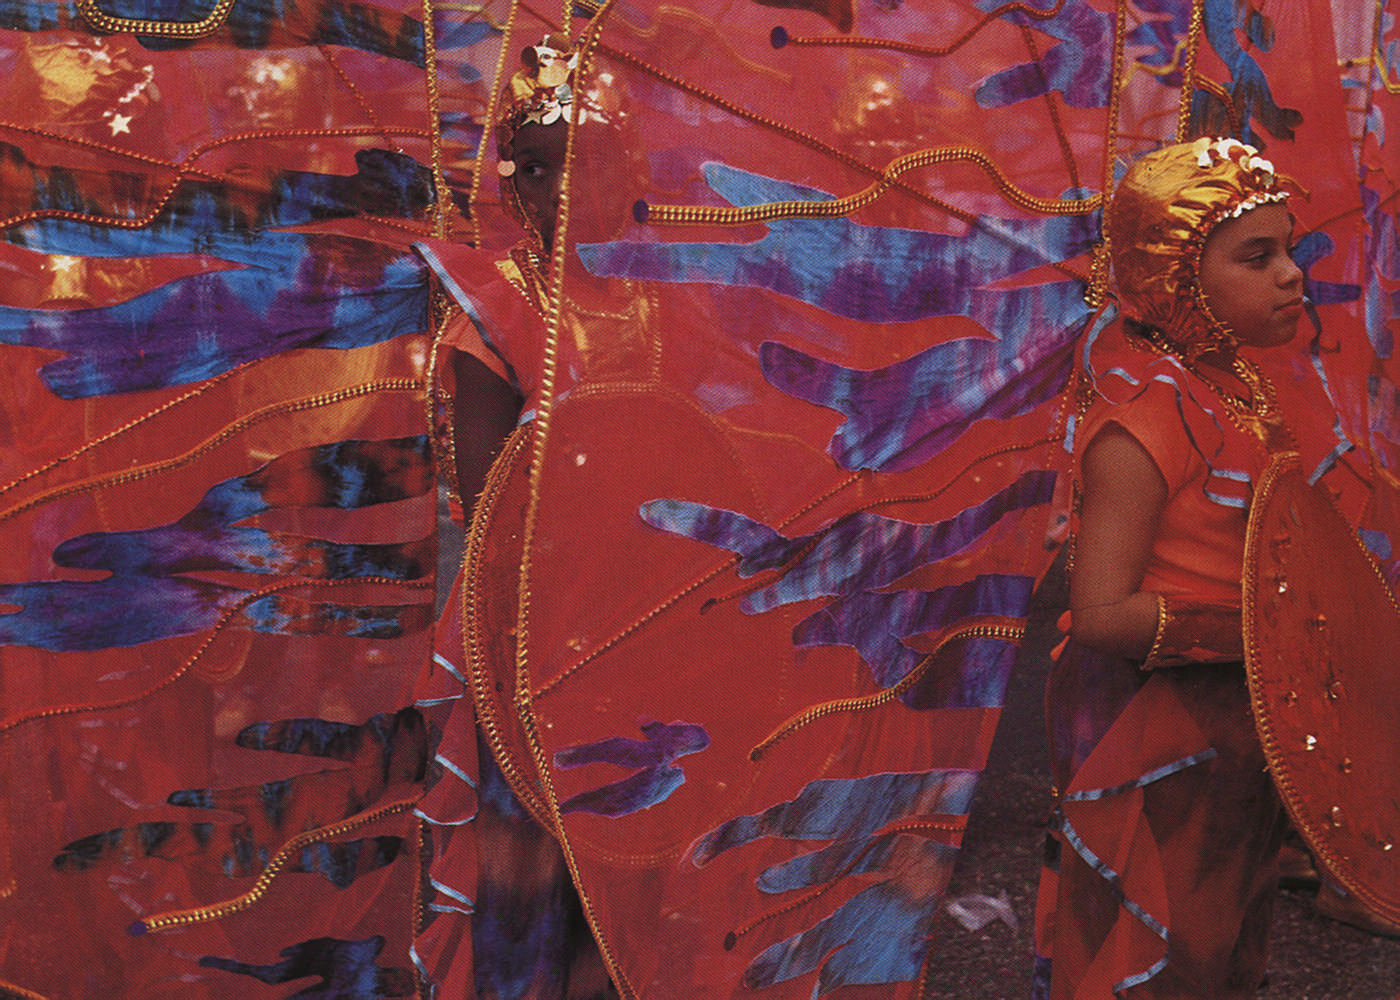 Orange sunset: young masqueraders from Ricard Bartholomew's 1994 Junior Carnival winner The Rainbow That is Real. Photograph by Bertrand de Peaza